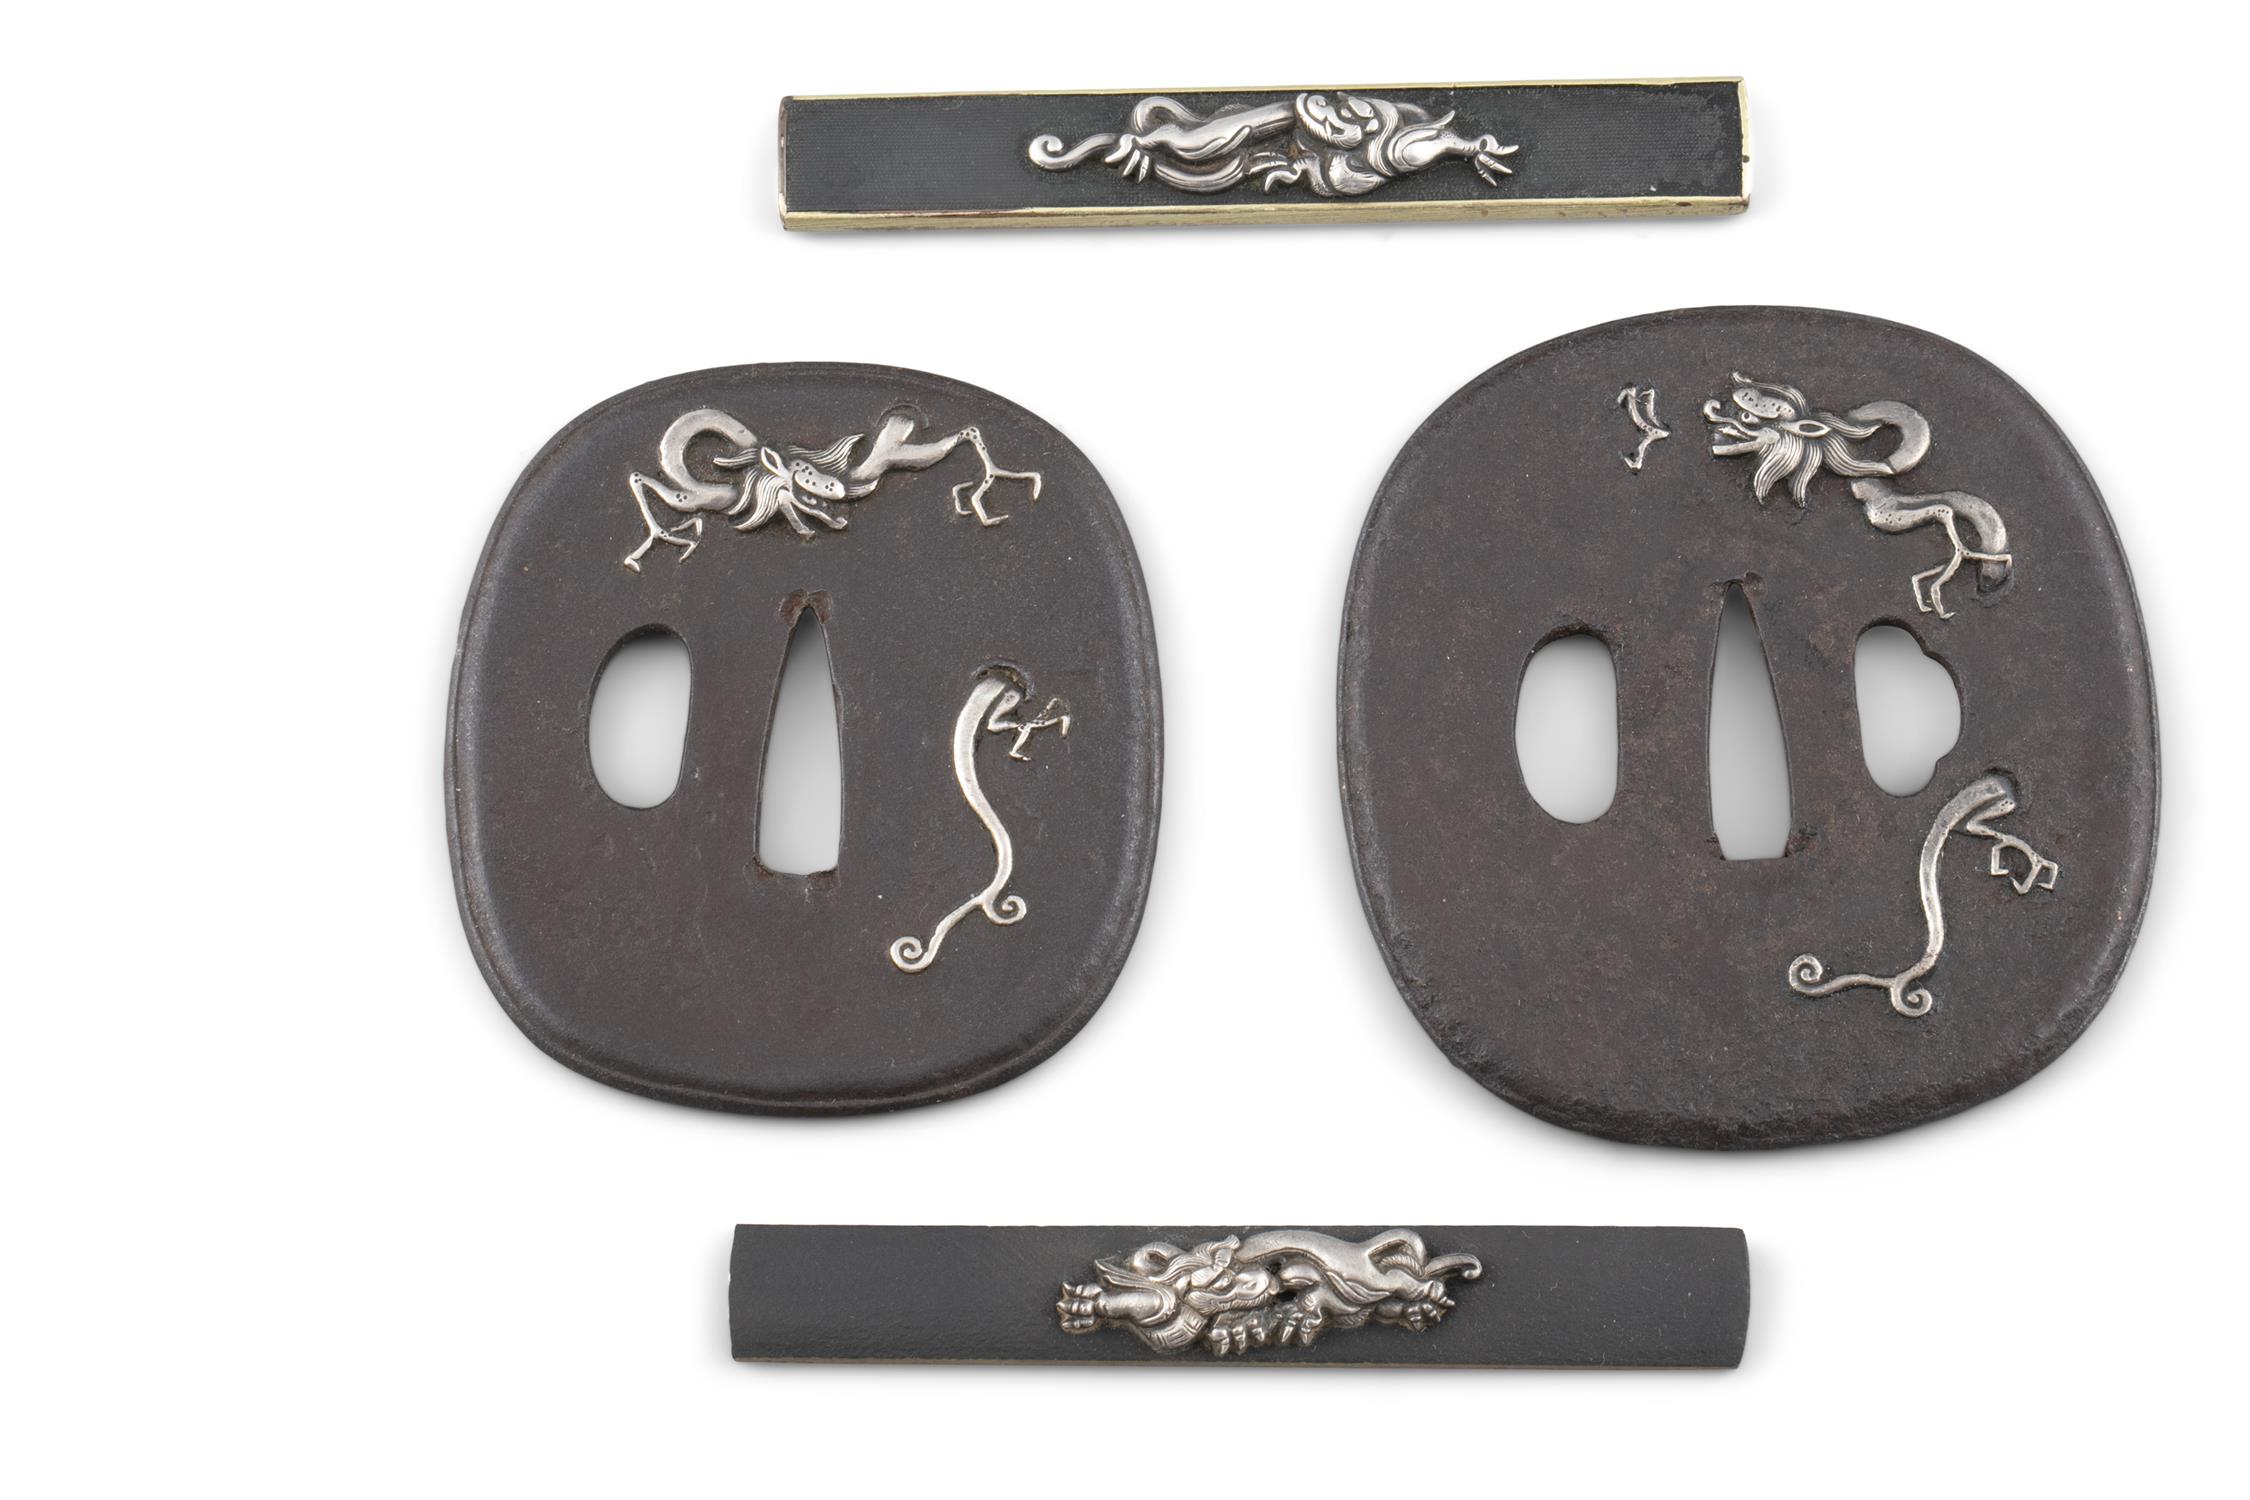 A PAIR OF 'RAIN DRAGONS' WROUGHT-IRON TSUBAS Japan, 19th century The first one for a katana, - Image 2 of 2